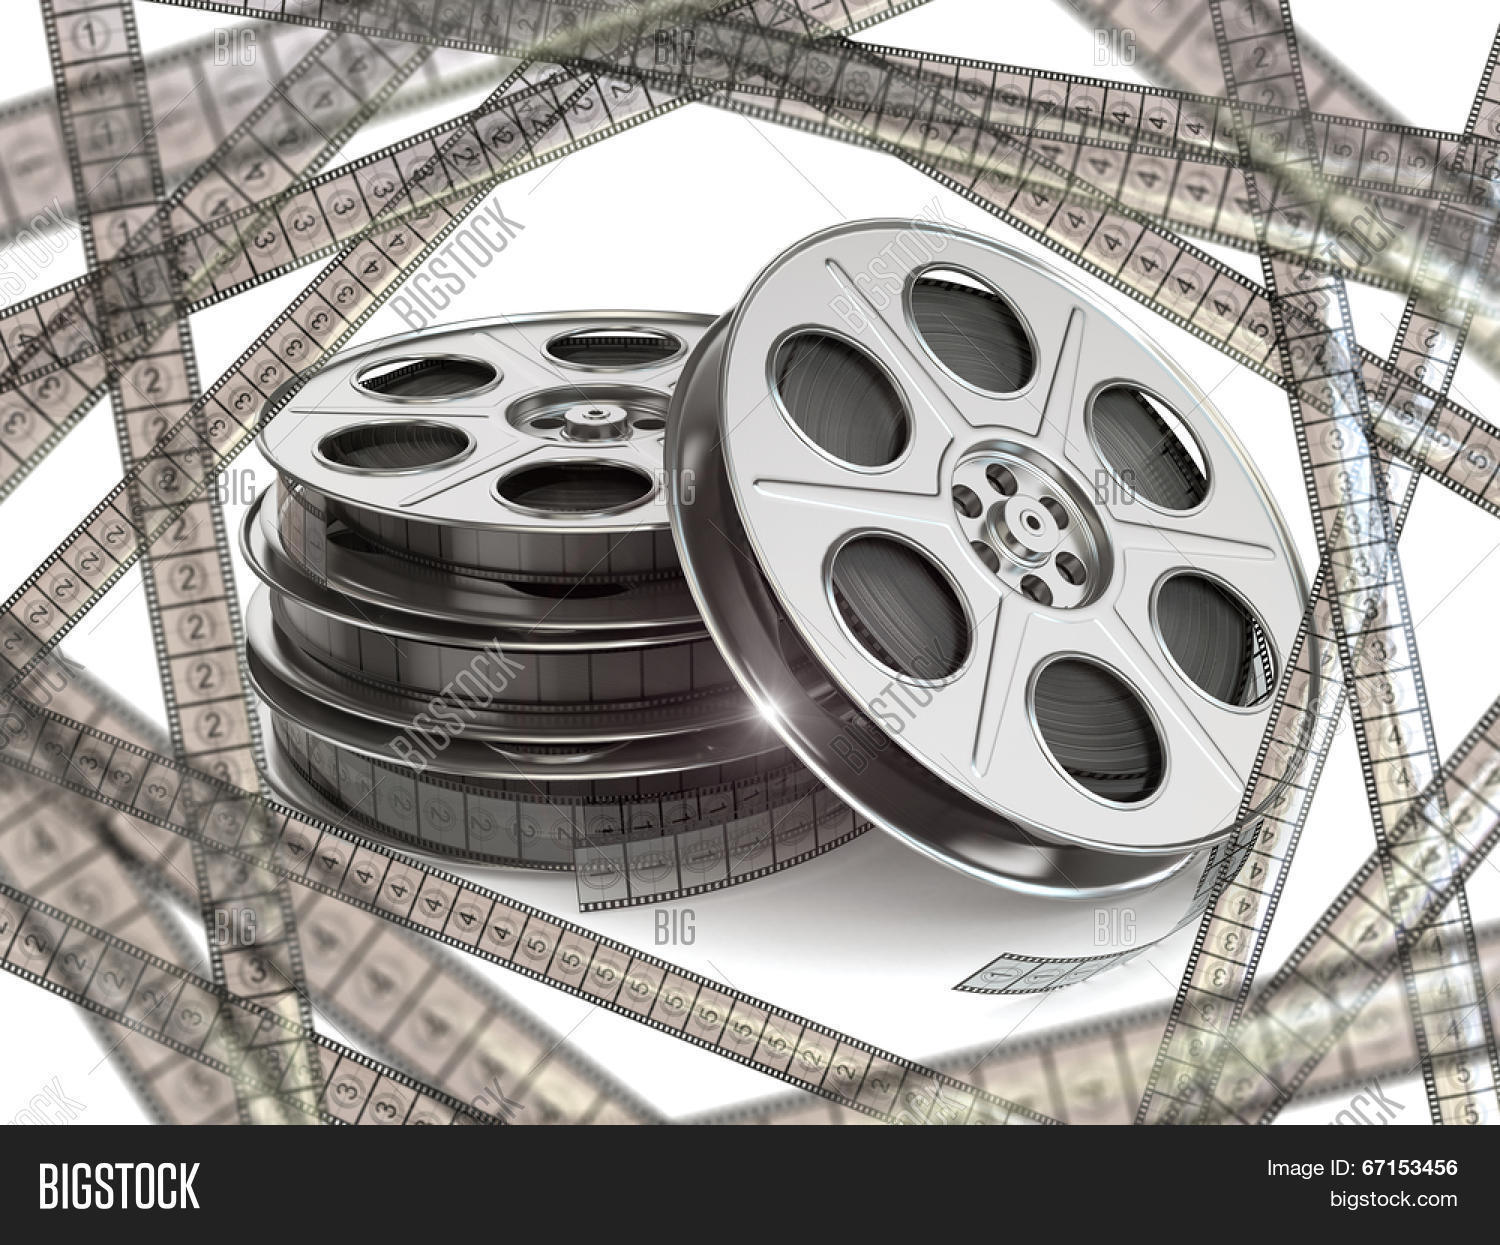 Film reels movie film image photo free trial bigstock film reels and movie film strips 3d thecheapjerseys Choice Image